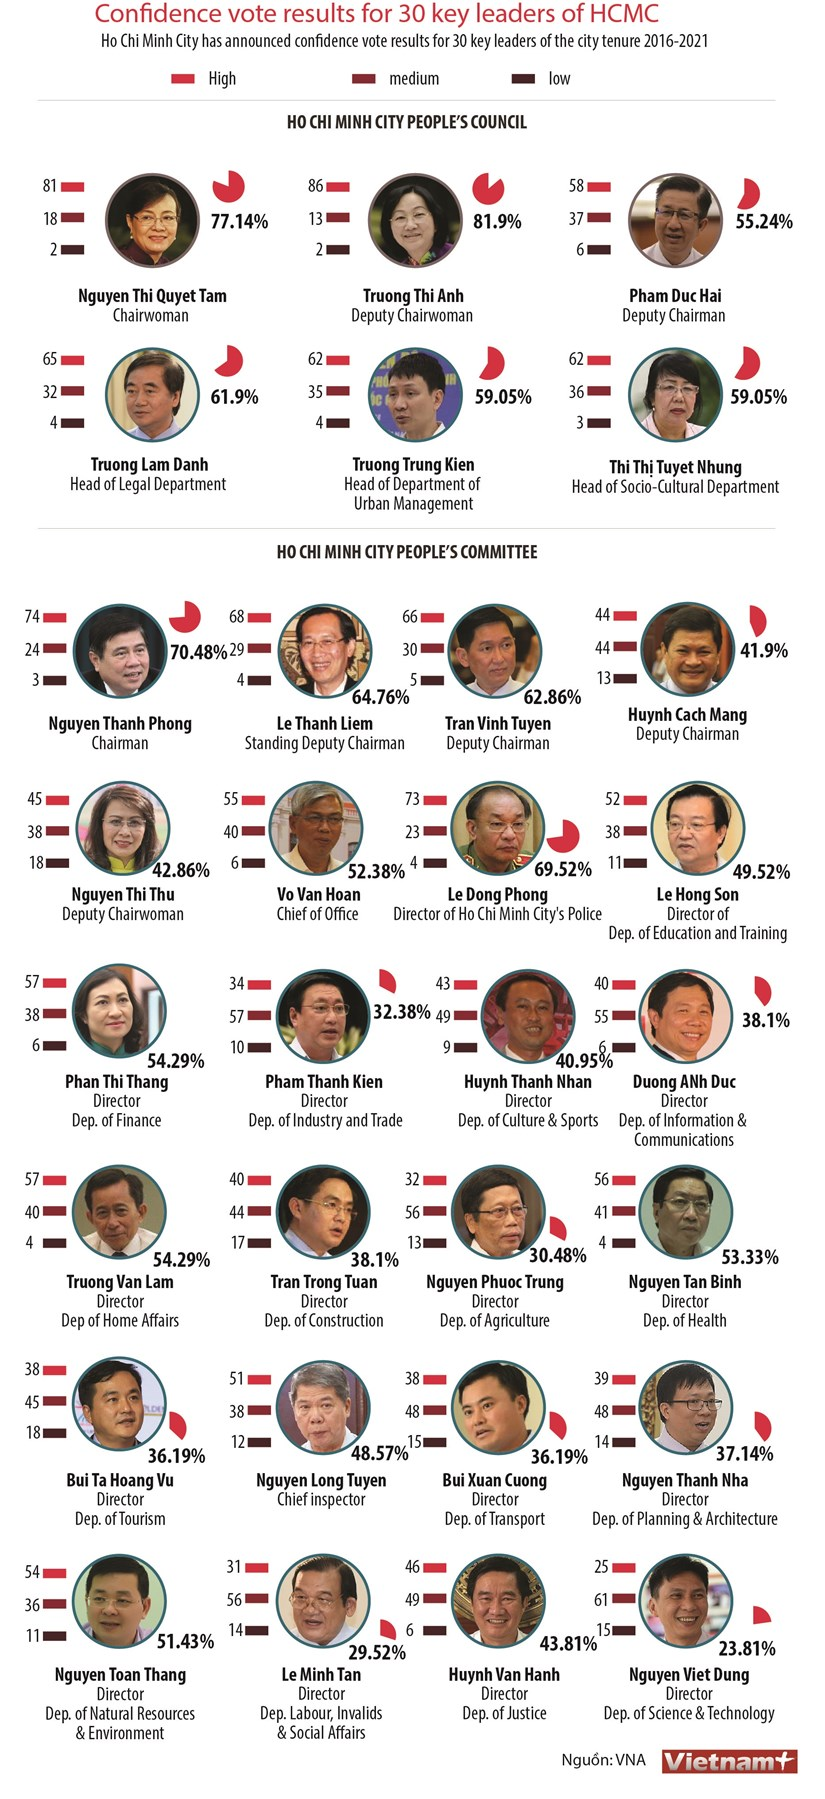 Confidence vote results for 30 key leaders of HCMC hinh anh 1